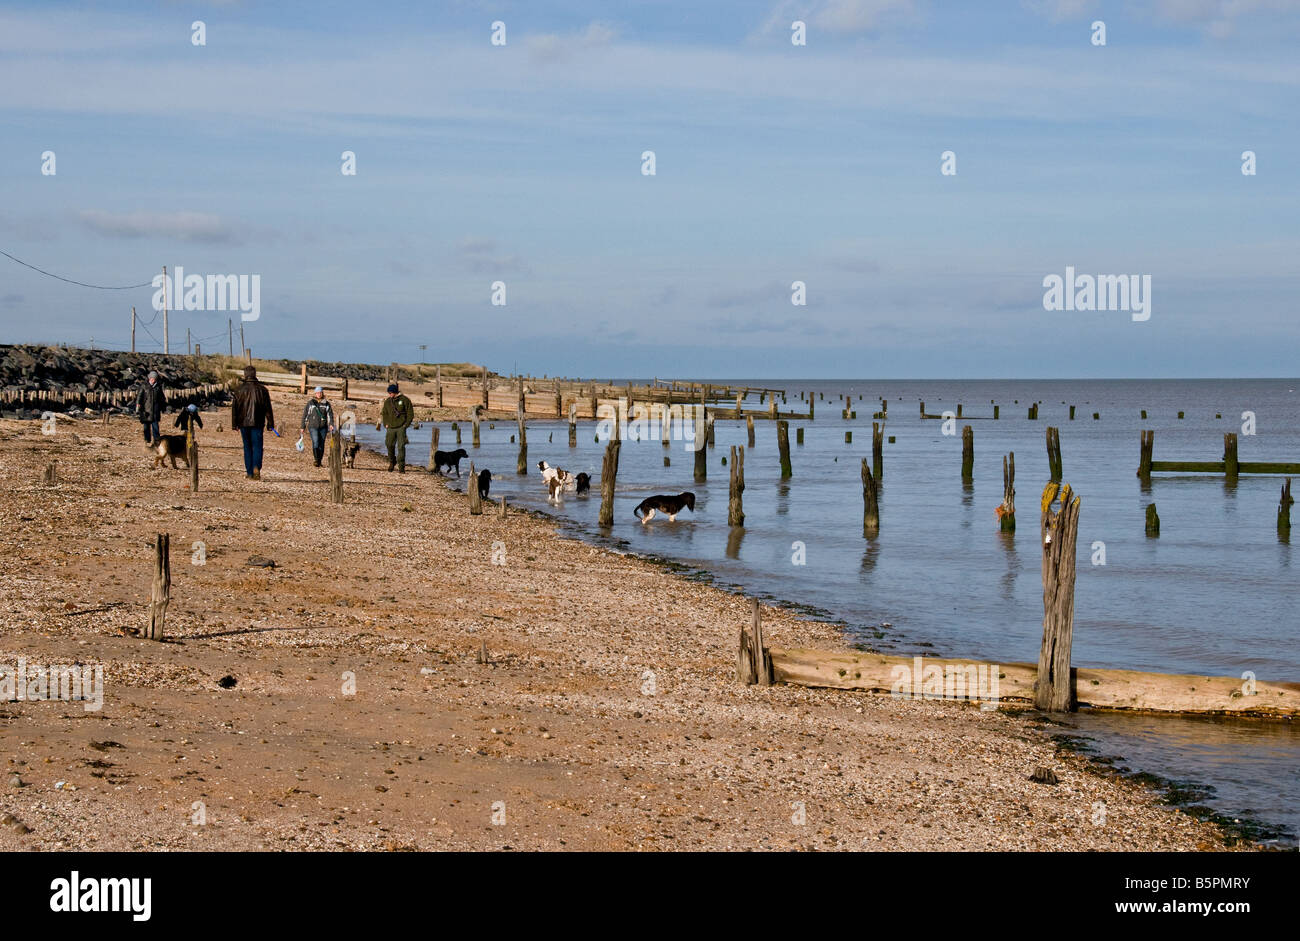 People walking their dogs on the beach at Leysdown on Sea on the Isle of Sheppey in Kent. - Stock Image